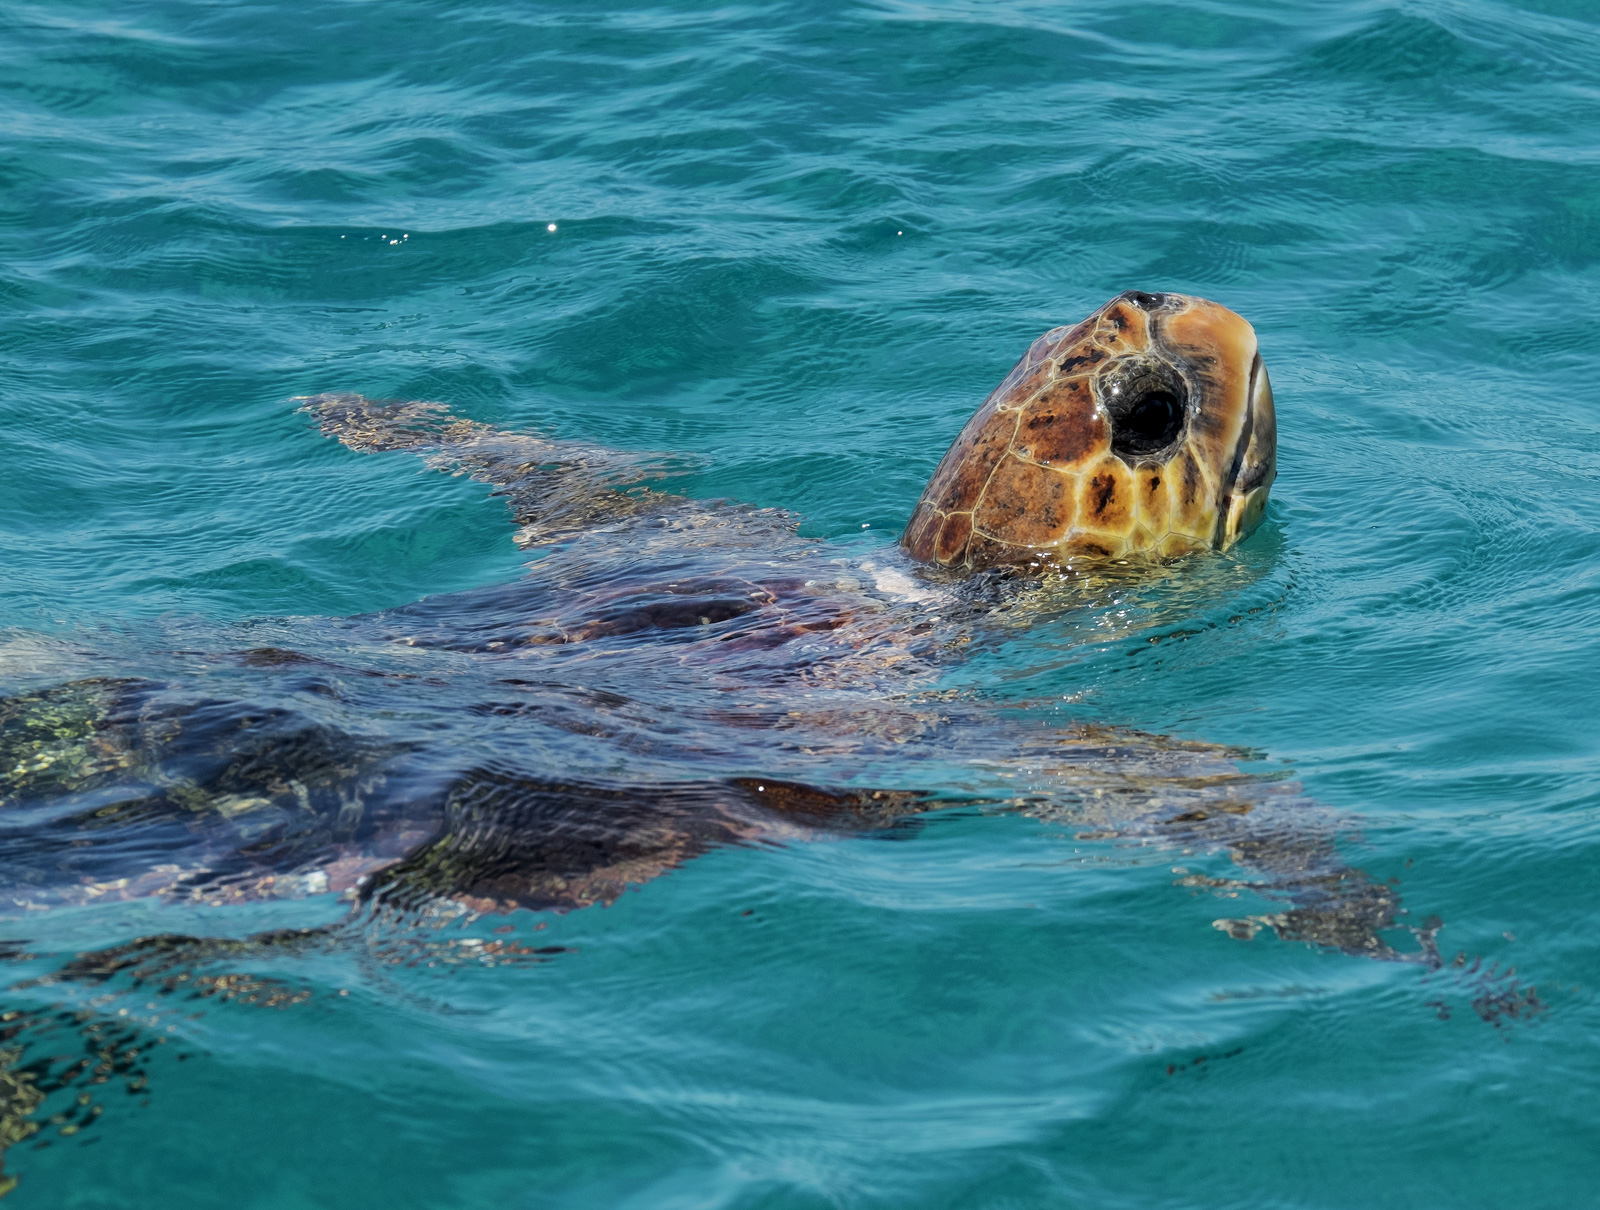 One of the days we were on the Greek island of Zakynthos my family boarded a boat to go in search of turtles and to snorkel in...